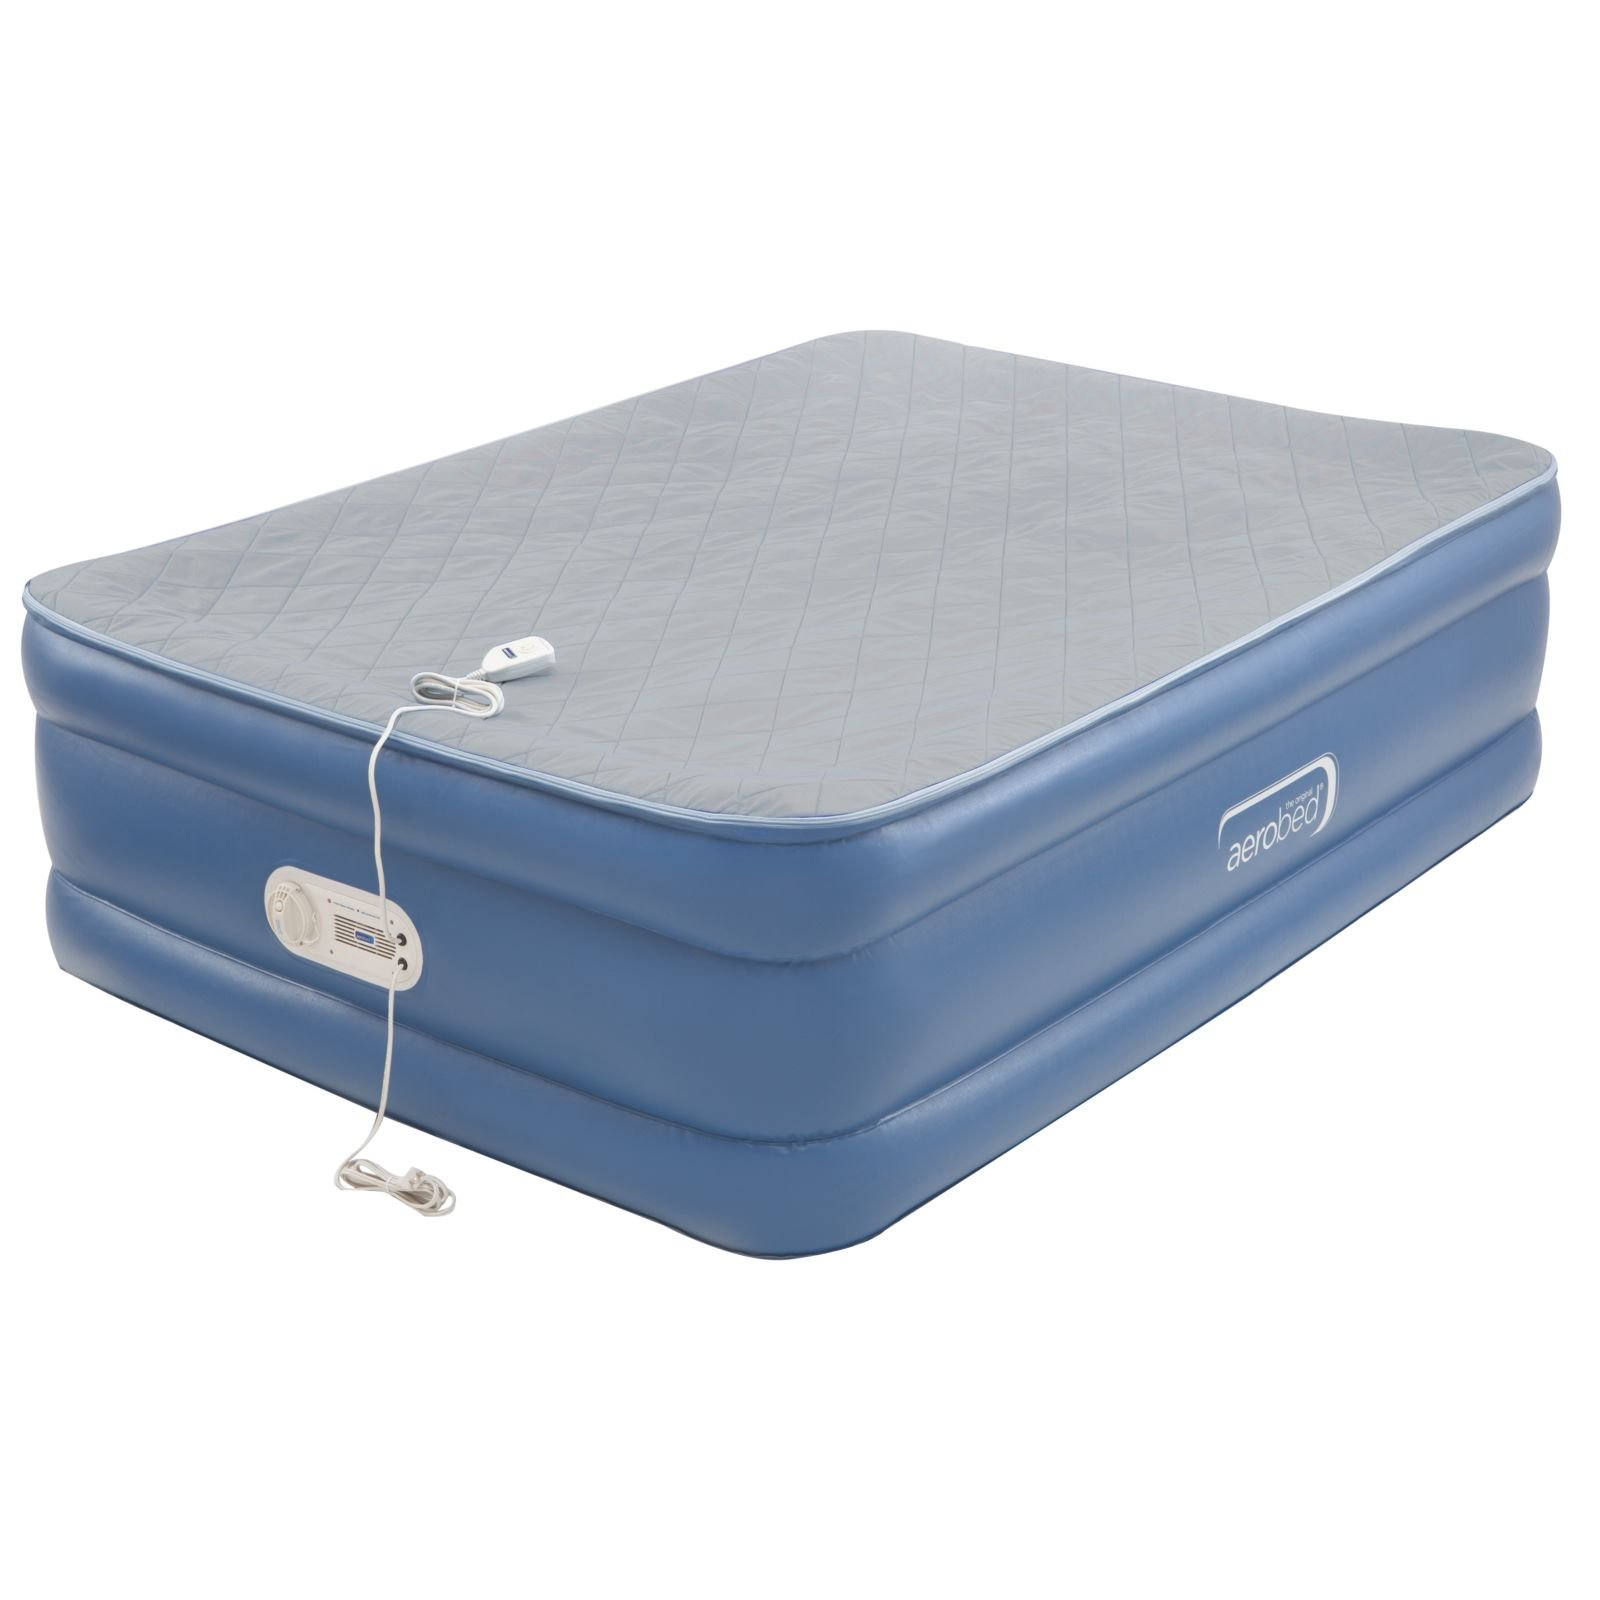 AeroBed Quilted Foam Topper Air Mattress, Full by AeroBed (Image #1)